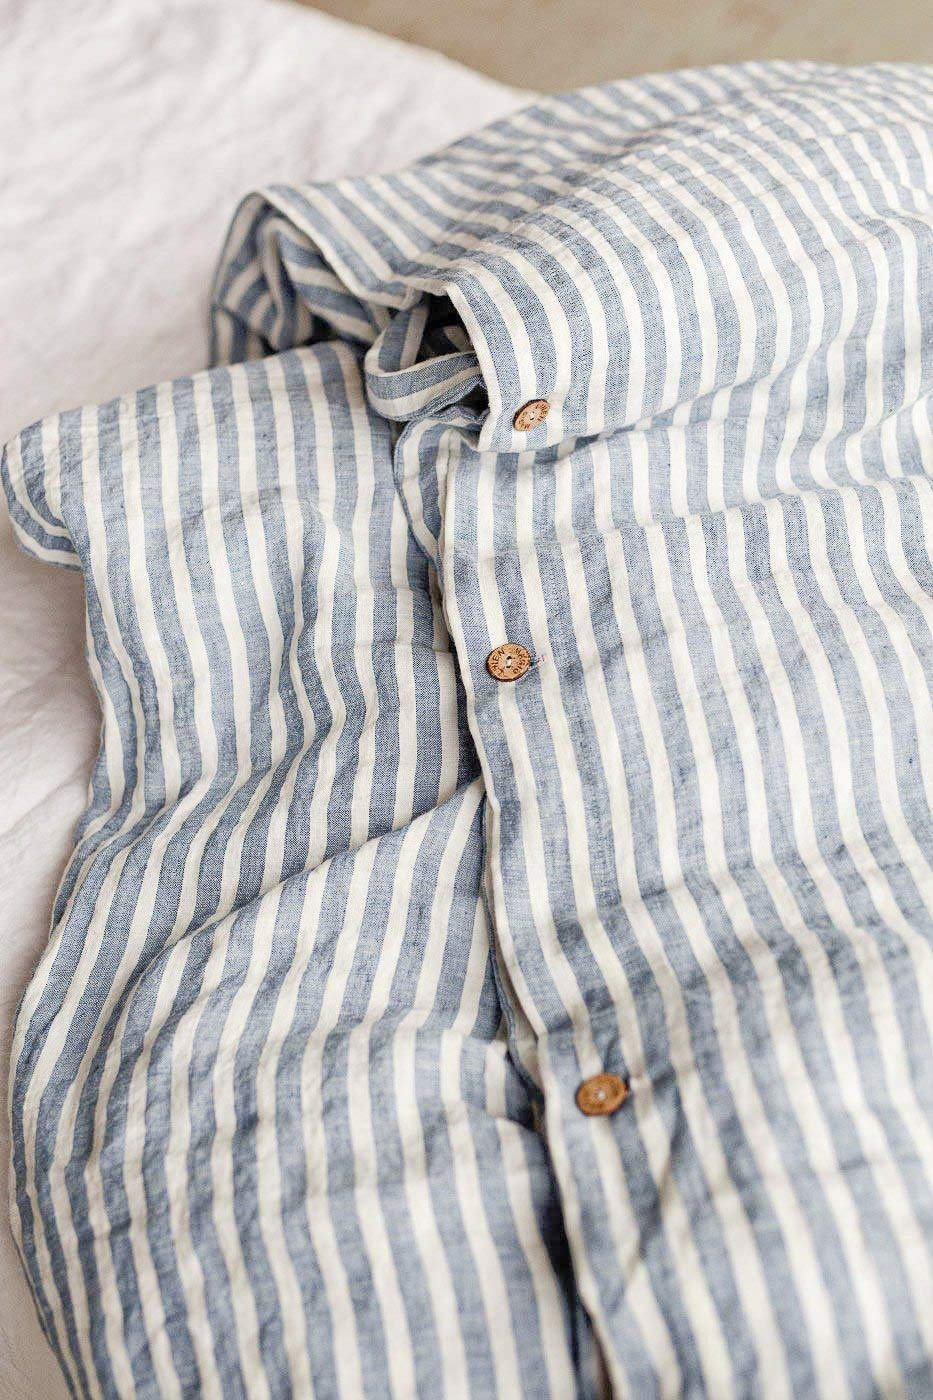 CDM product Magic Linen Duvet Covers & Shams 3 Piece Set from 100% Natural Chambray Bedding King Size in Blue Stripe small thumbnail image